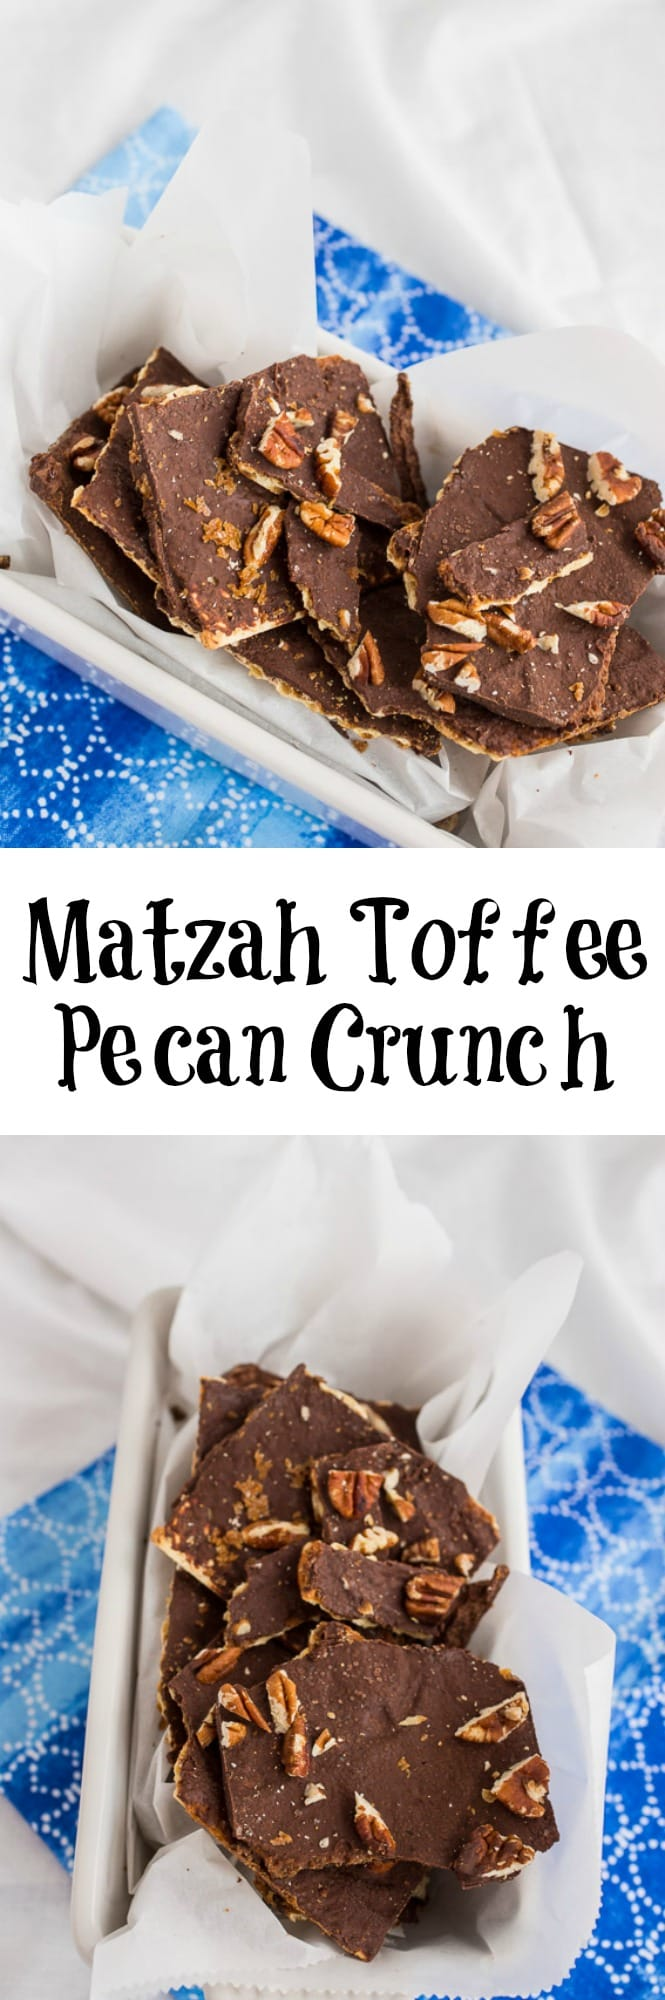 Matzah Toffee Pecan Crunch | girlinthelittleredkitchen.com